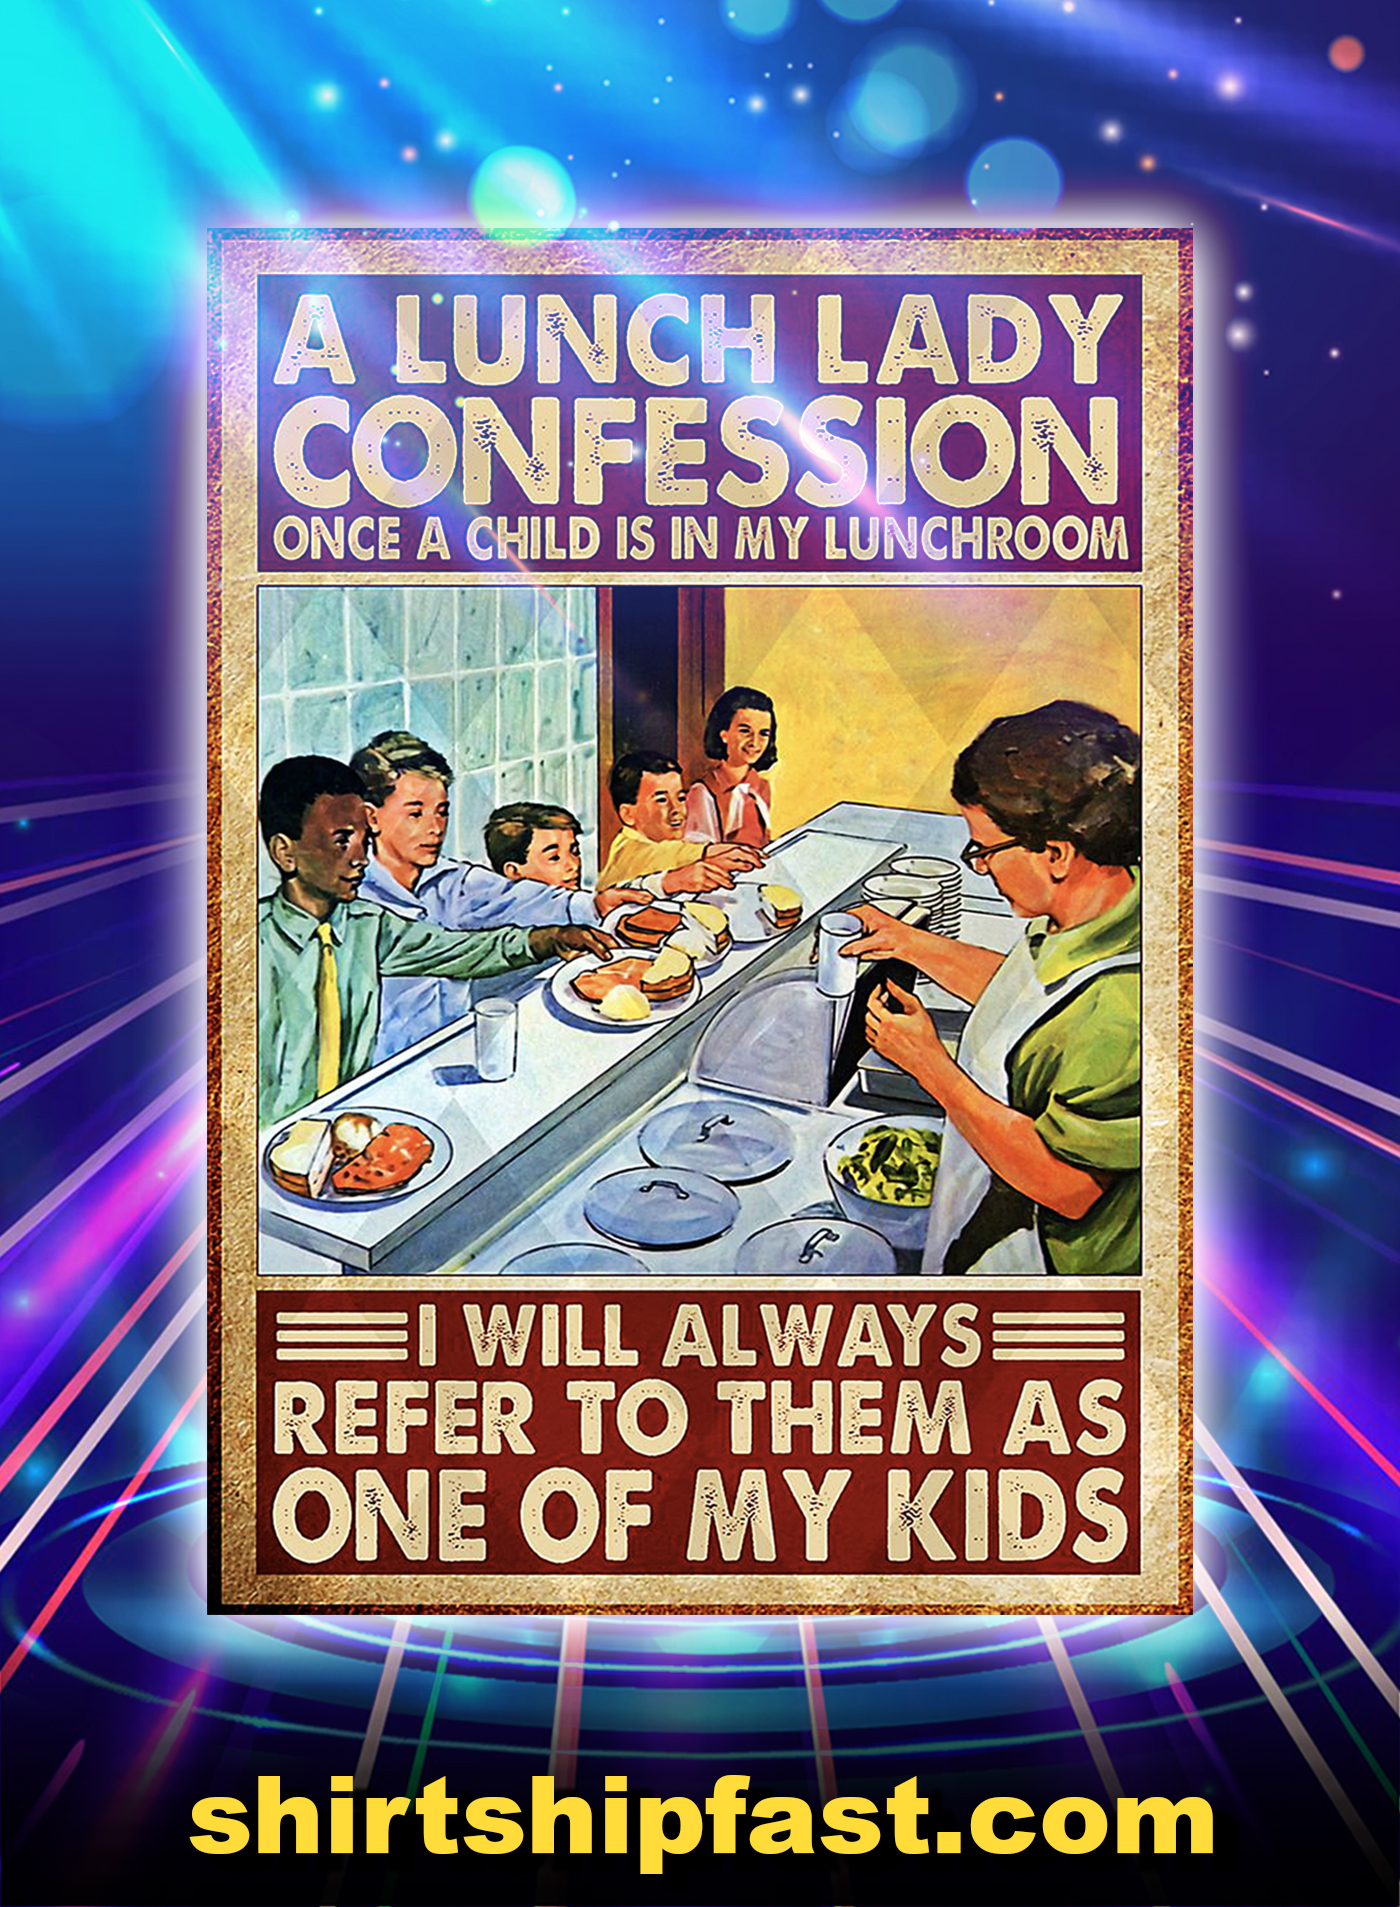 A lunch lady confession i will always refer to them as one of my kid poster - A1